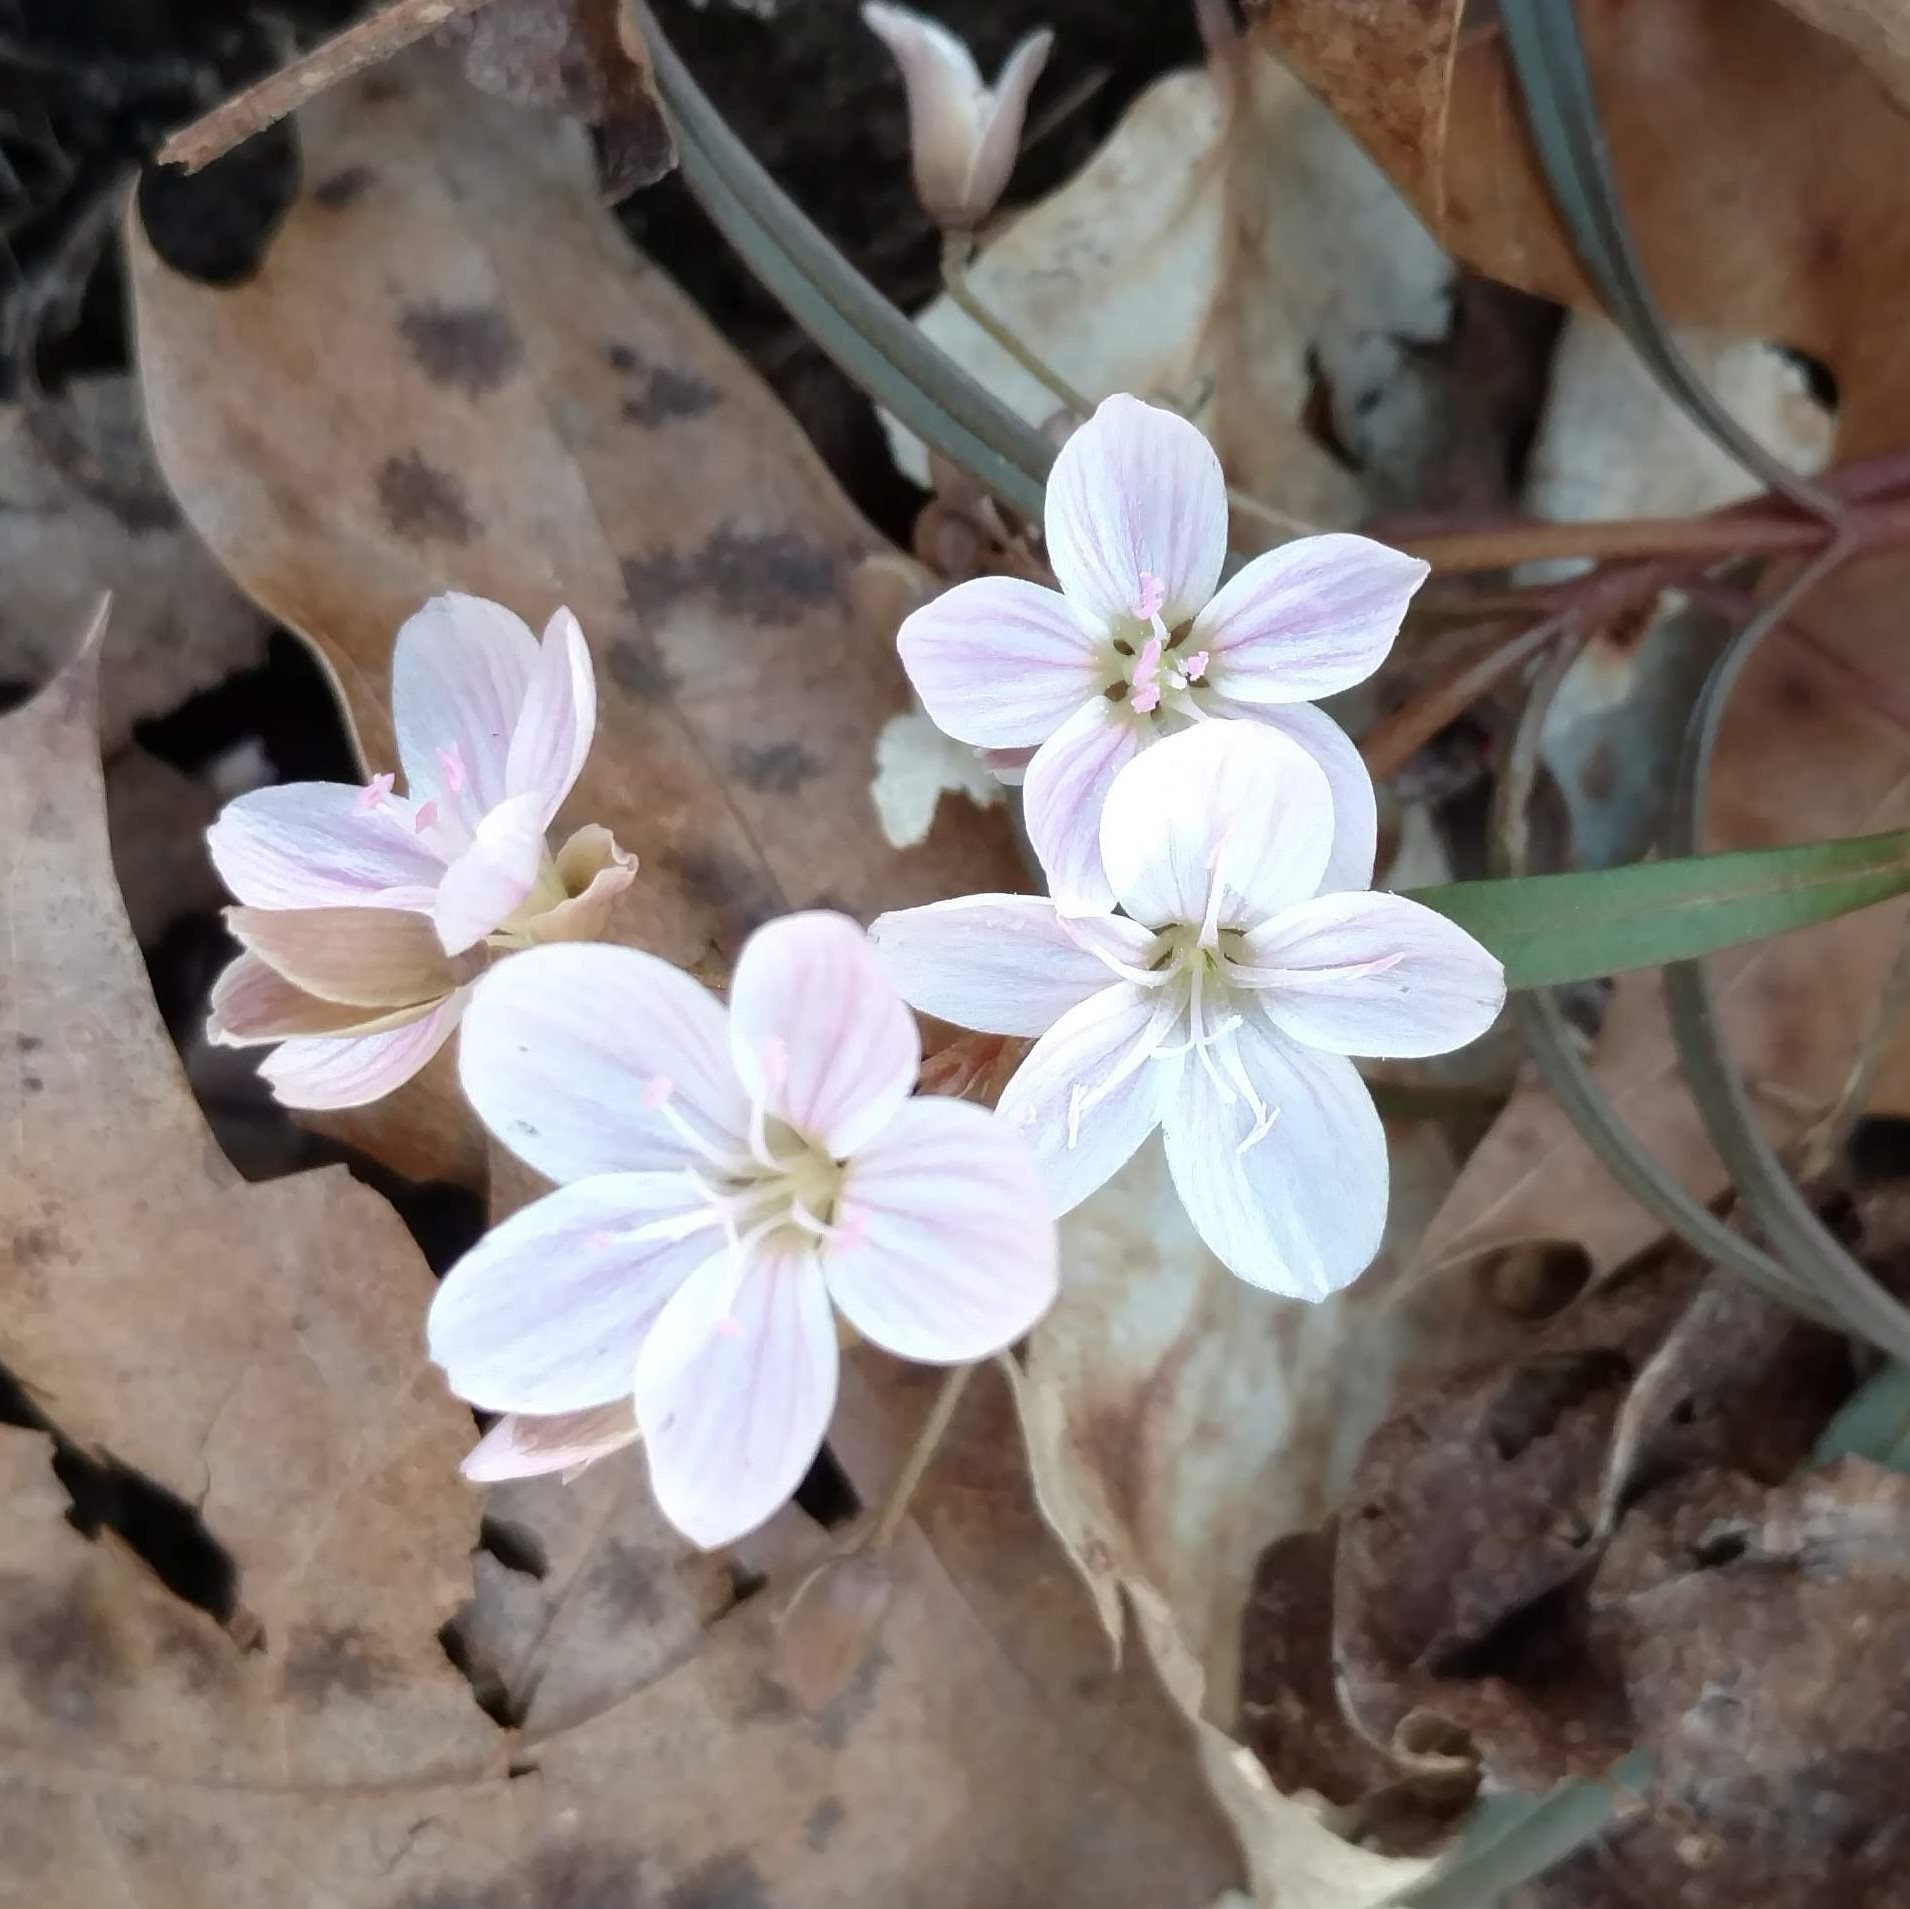 White and pink flowers surrounded by brown leaves